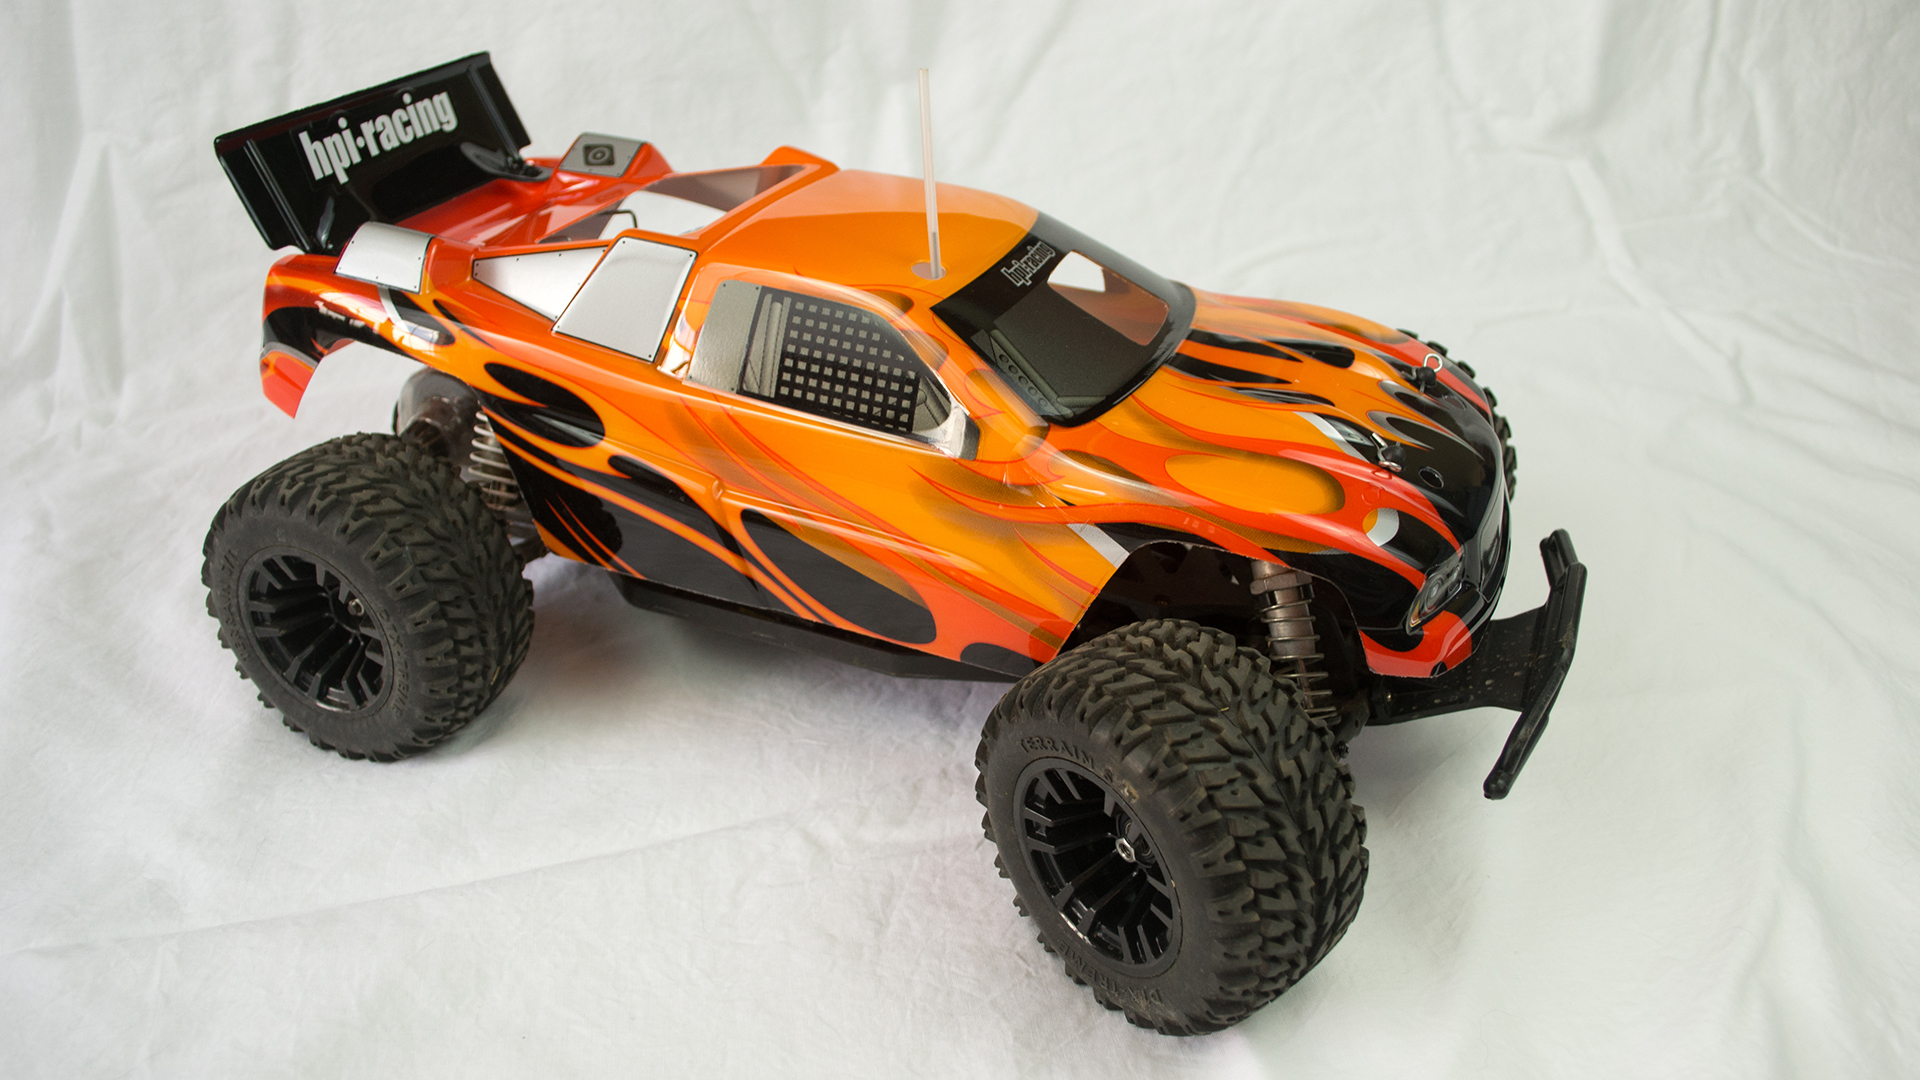 How To Get Into Hobby Rc Upgrading Your Car And Batteries Tested F1 Receiver Board Helicopter Spare Parts Circuit Hot Sell Bx Looks Very Different From The Original Buggy Style This Radical Change Only Required A Few Component Swaps Such Adaptability Is Common In